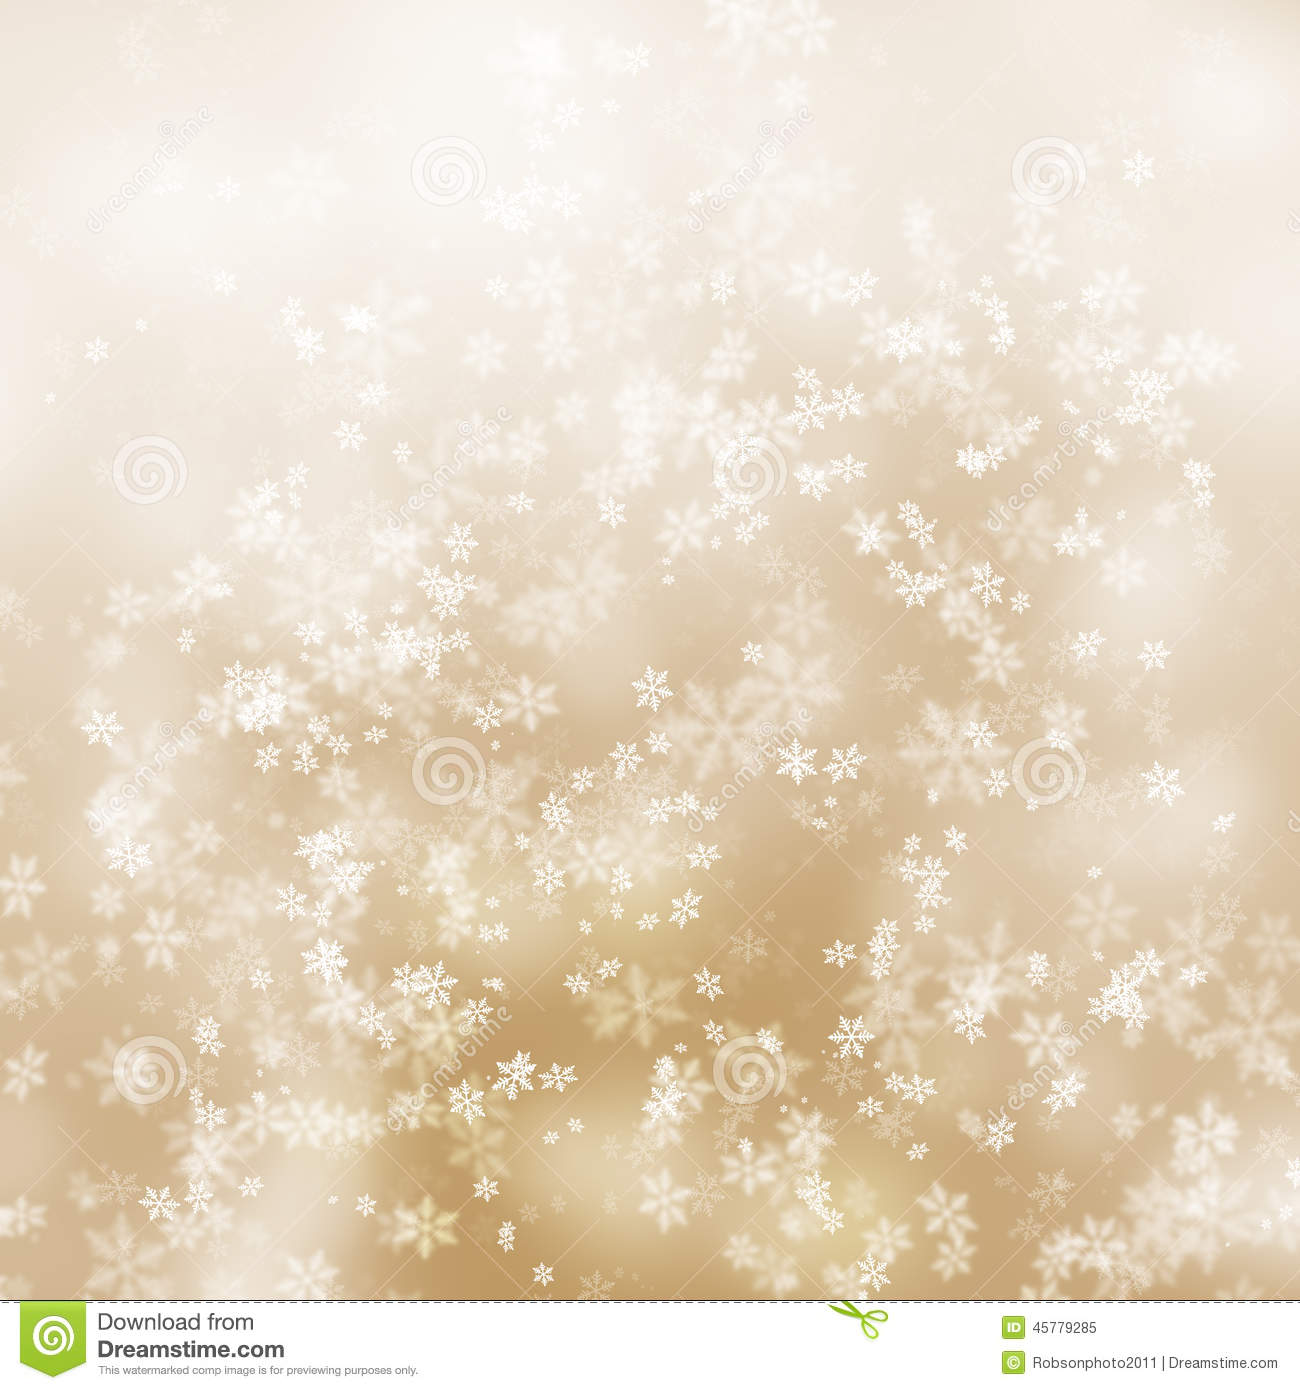 gold christmas snowflake wallpaper - photo #30